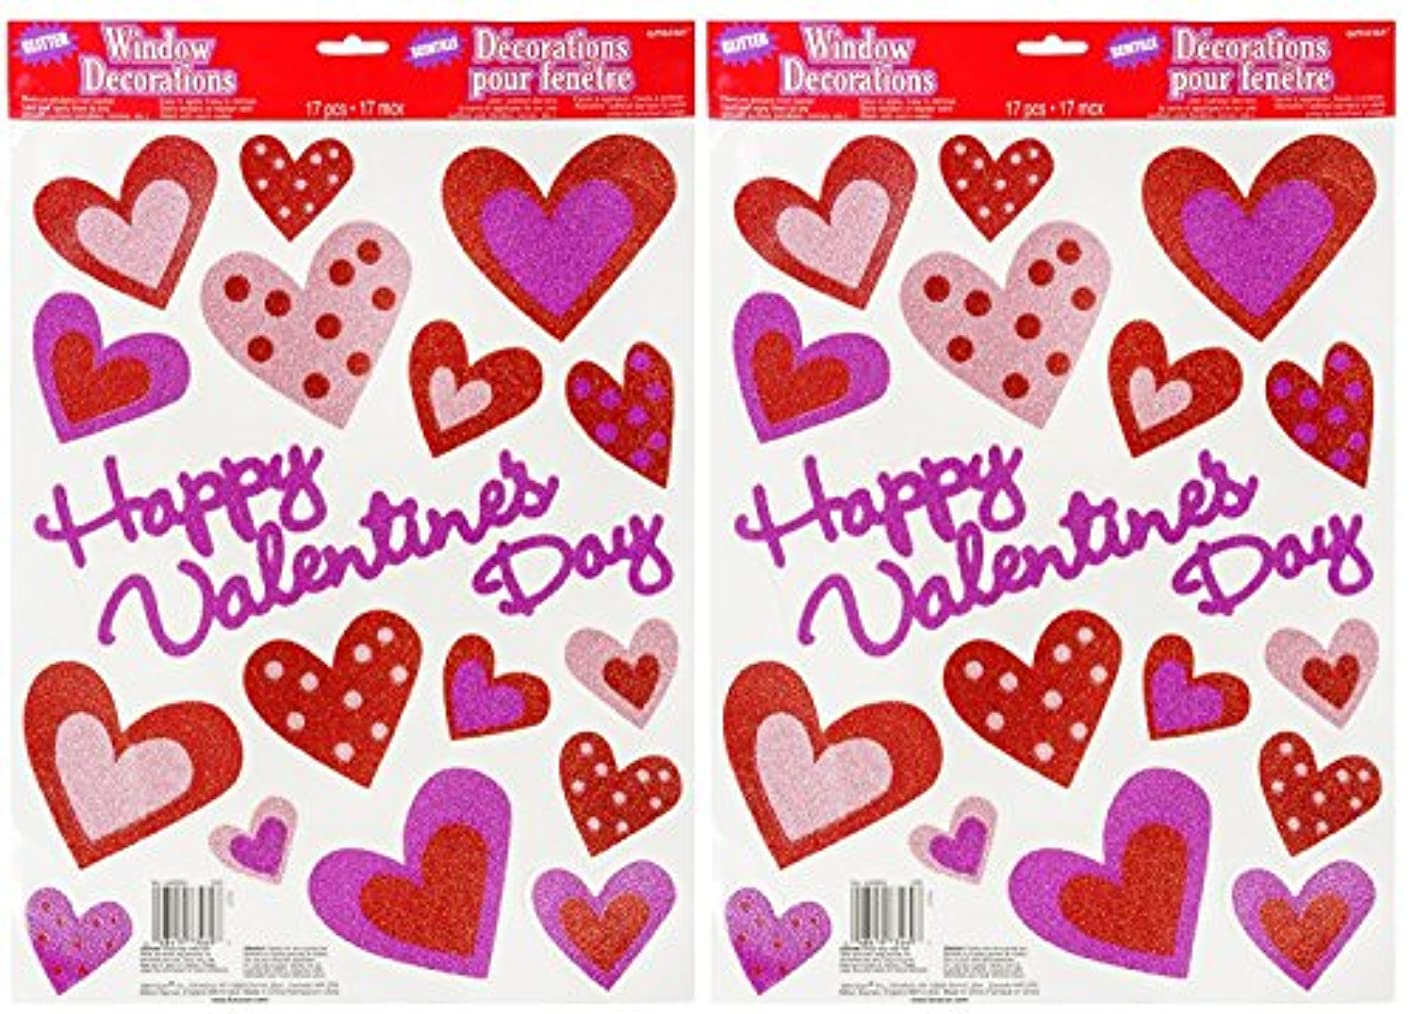 Happy Valentines Day Glitter Hearts Window Sticker Decorations (Pack of 2)